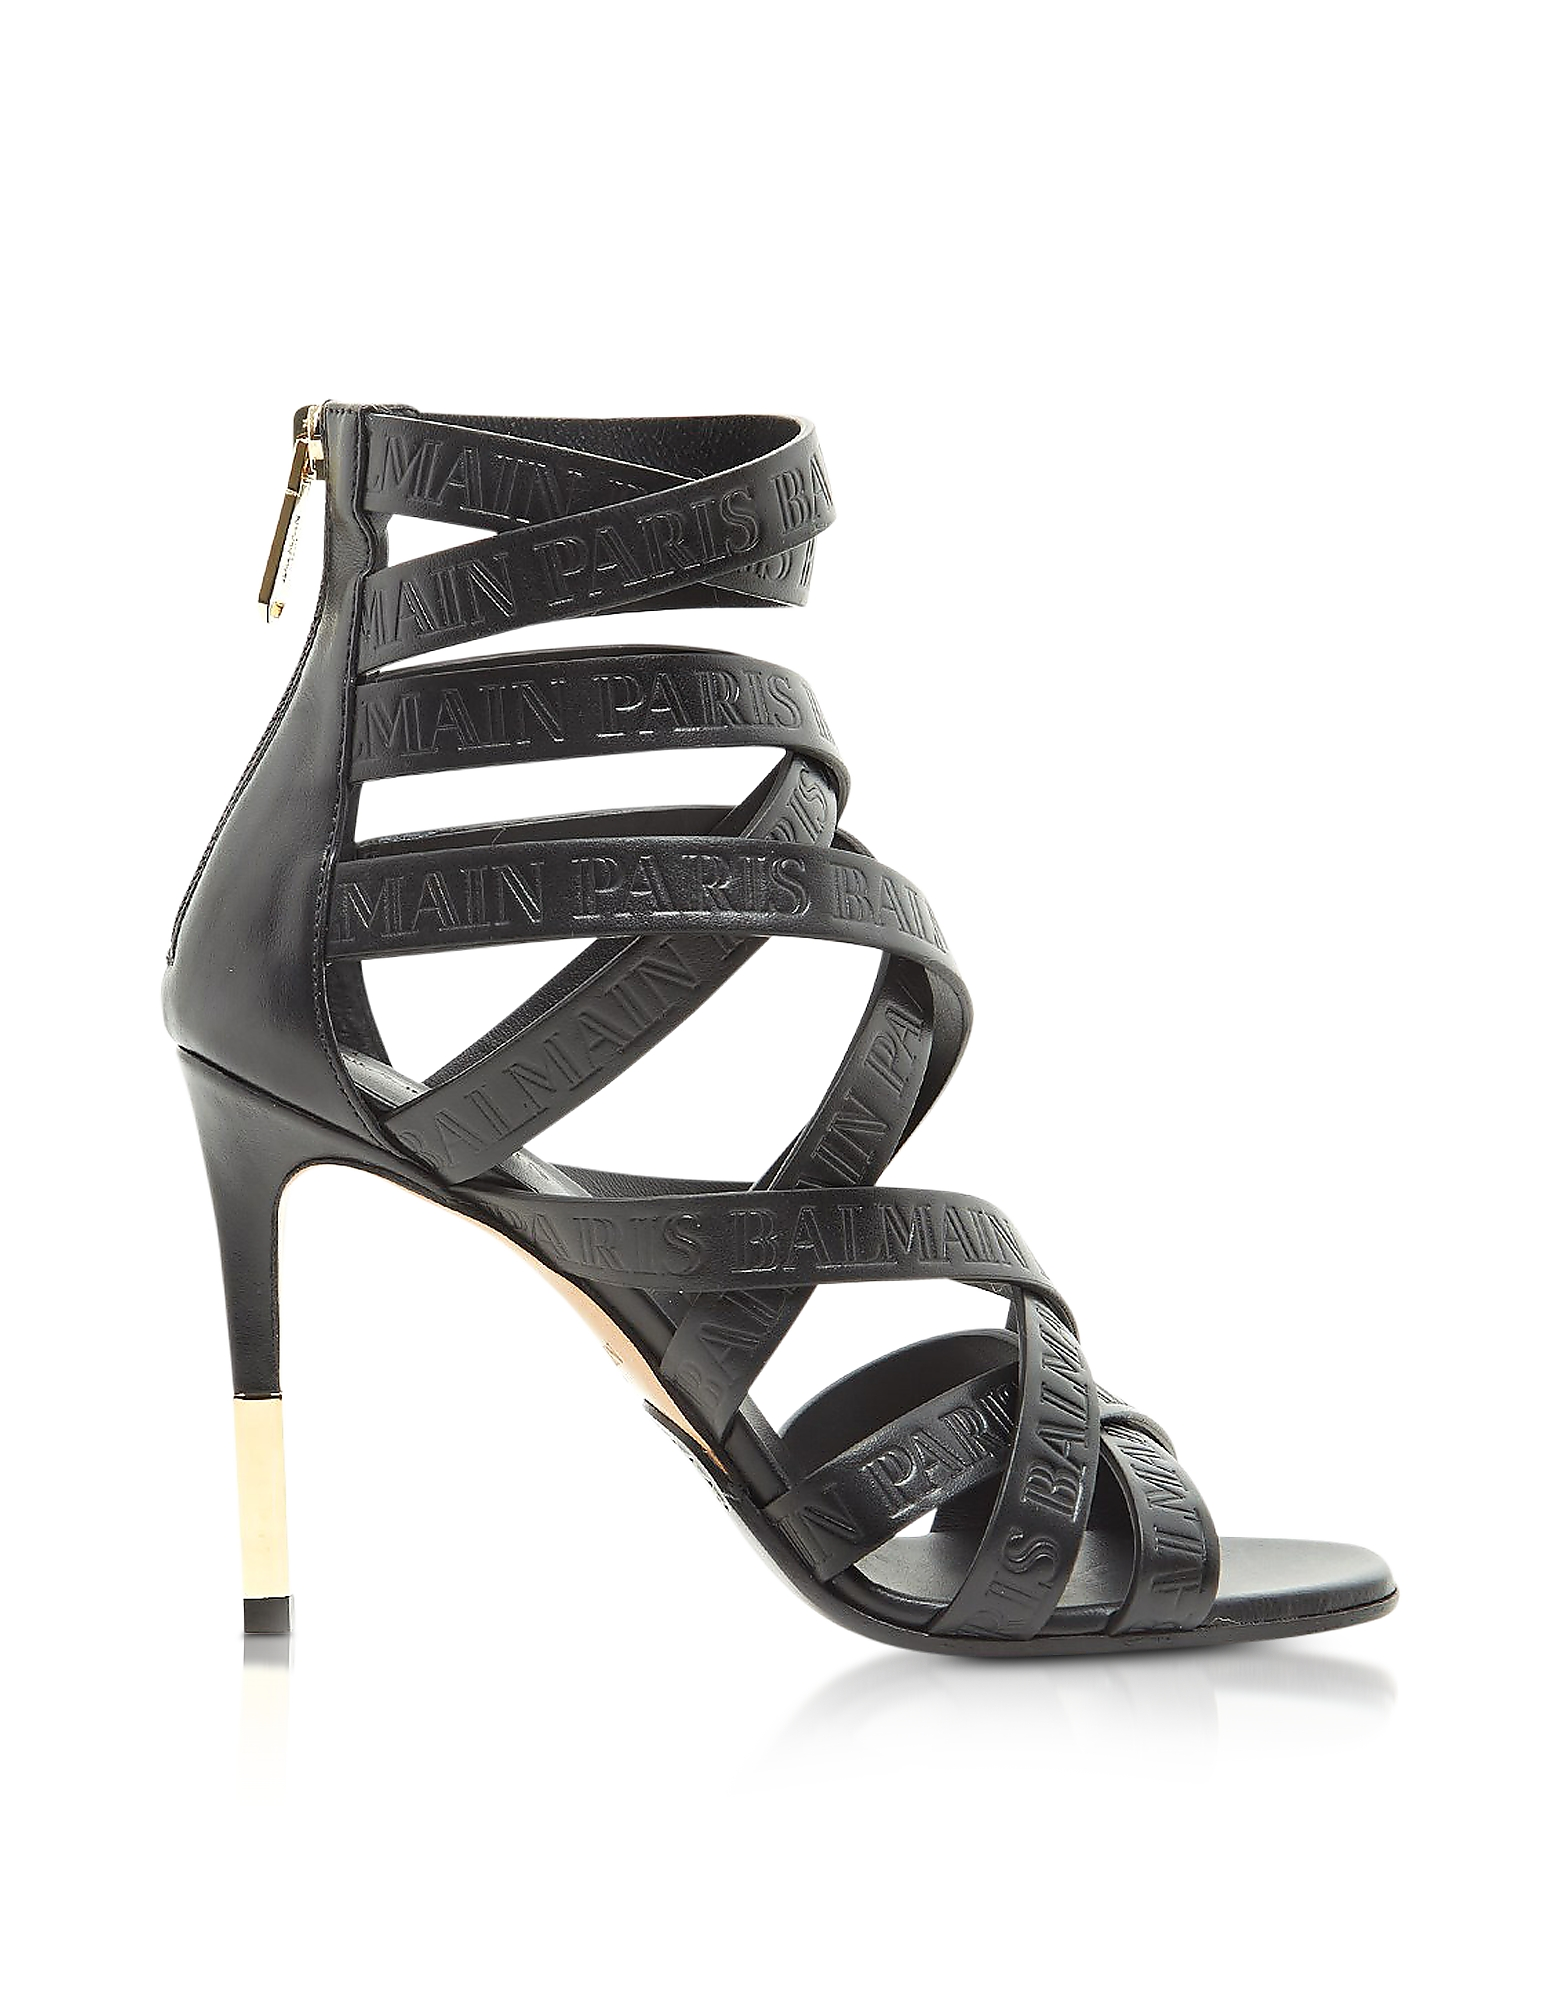 Balmain Shoes, Charlotte Black Embossed Leather High Heel Sandals